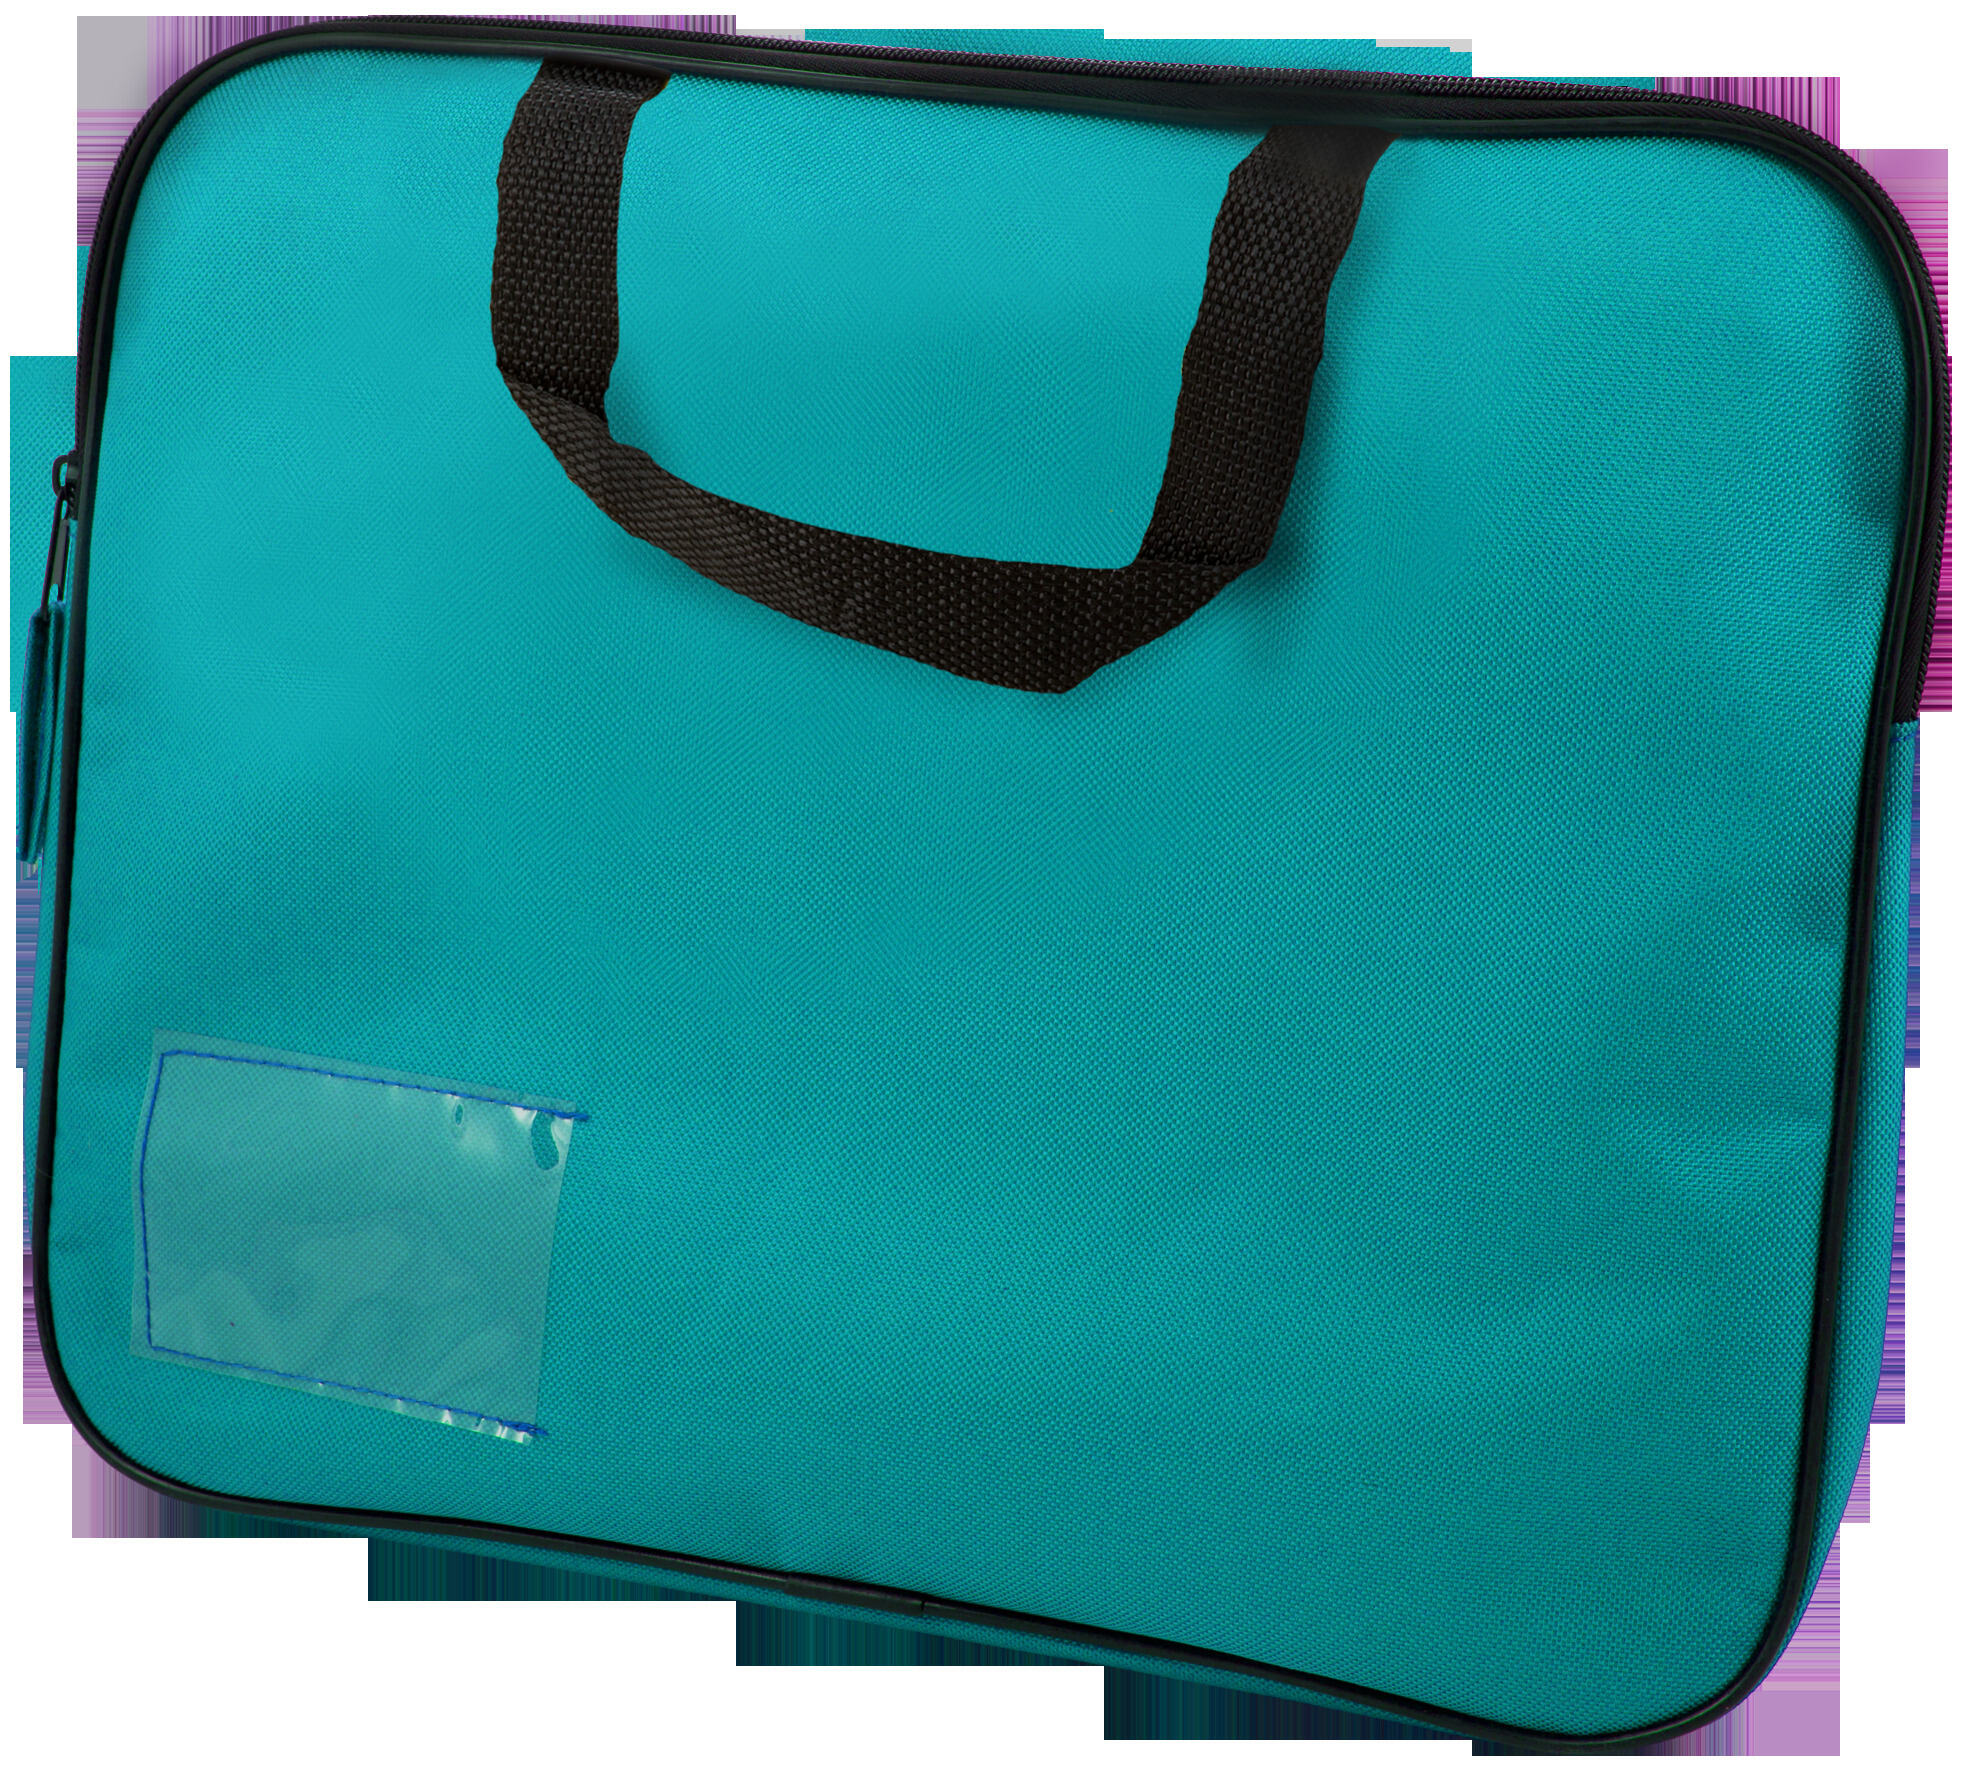 Homework Bag (Book Bag) With Handle - Teal